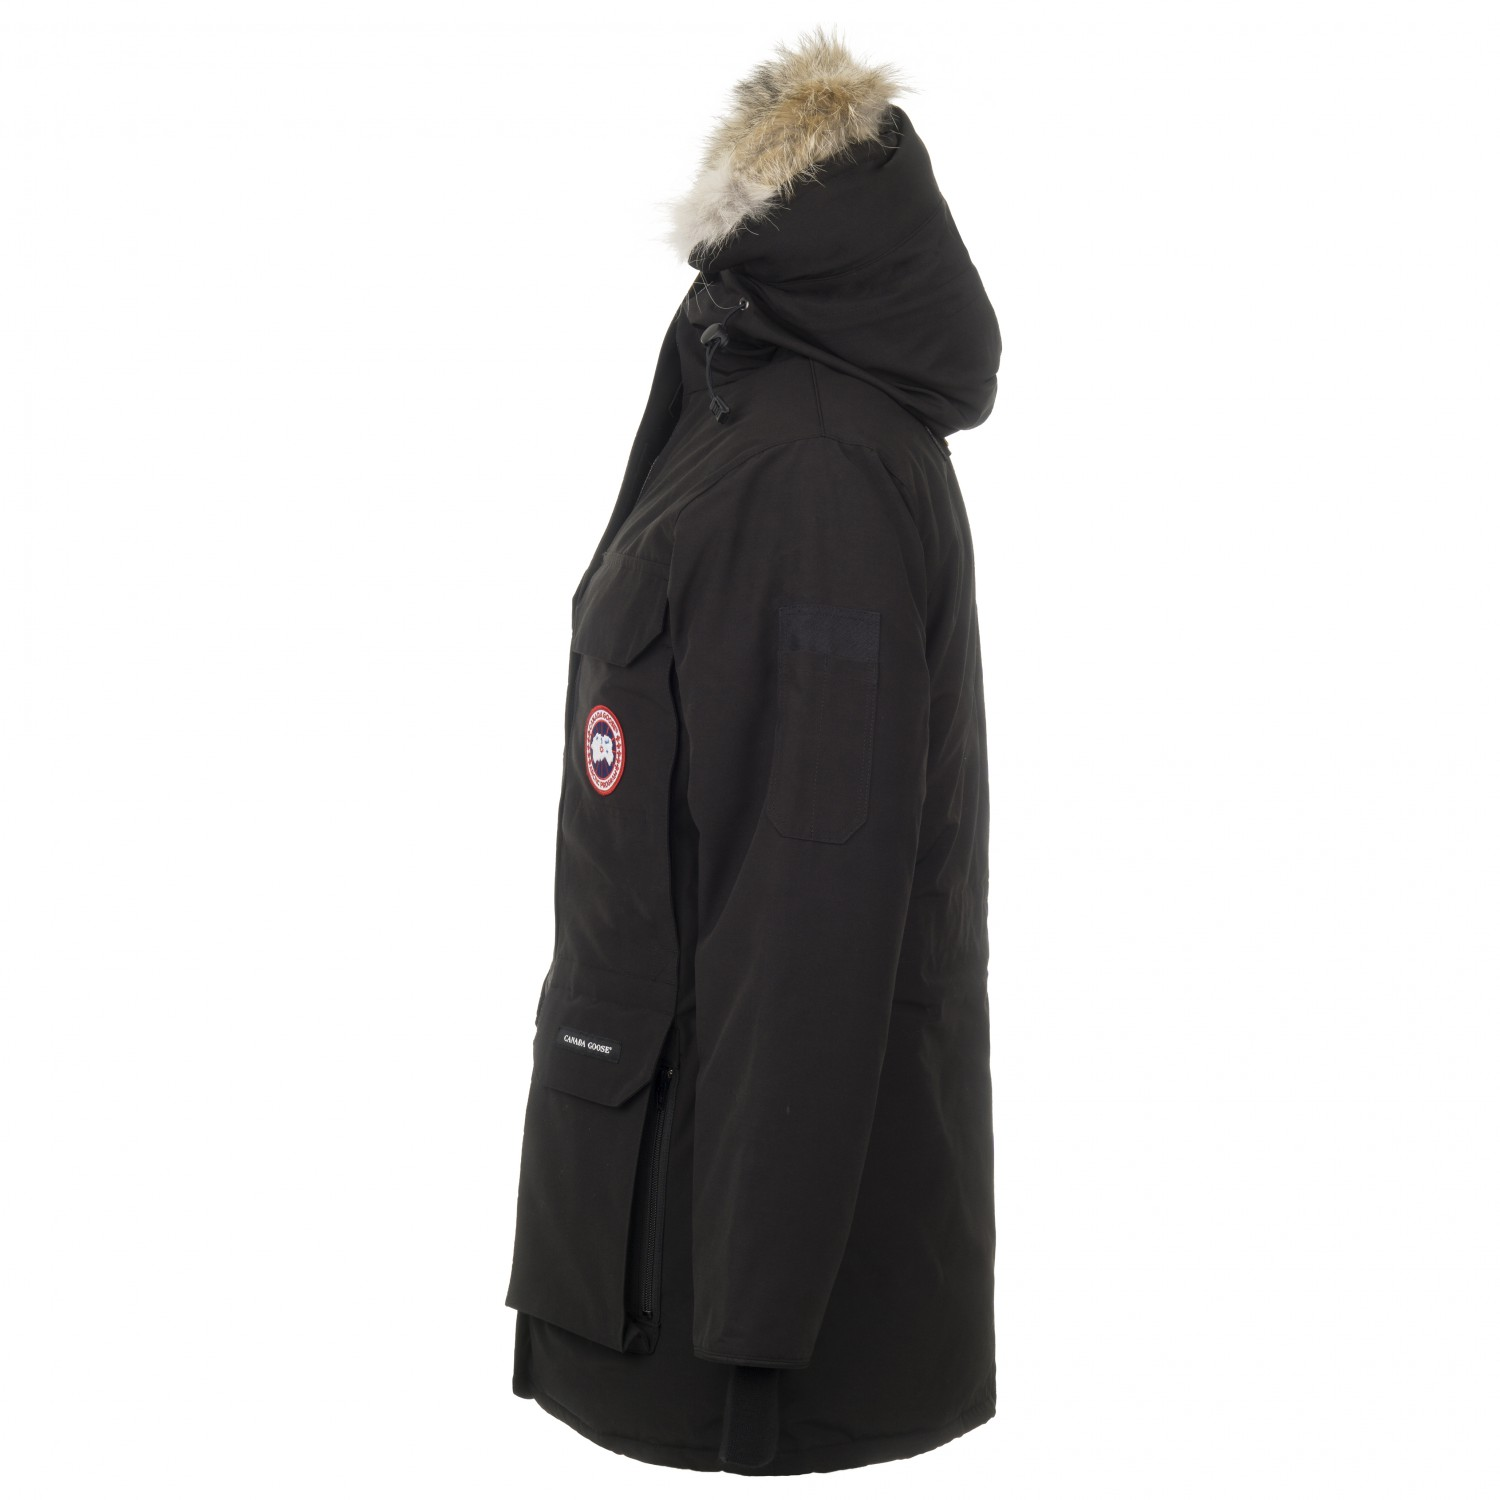 817325e308a Canada Goose Expedition Parka - Winter Jacket Women's   Free UK ...